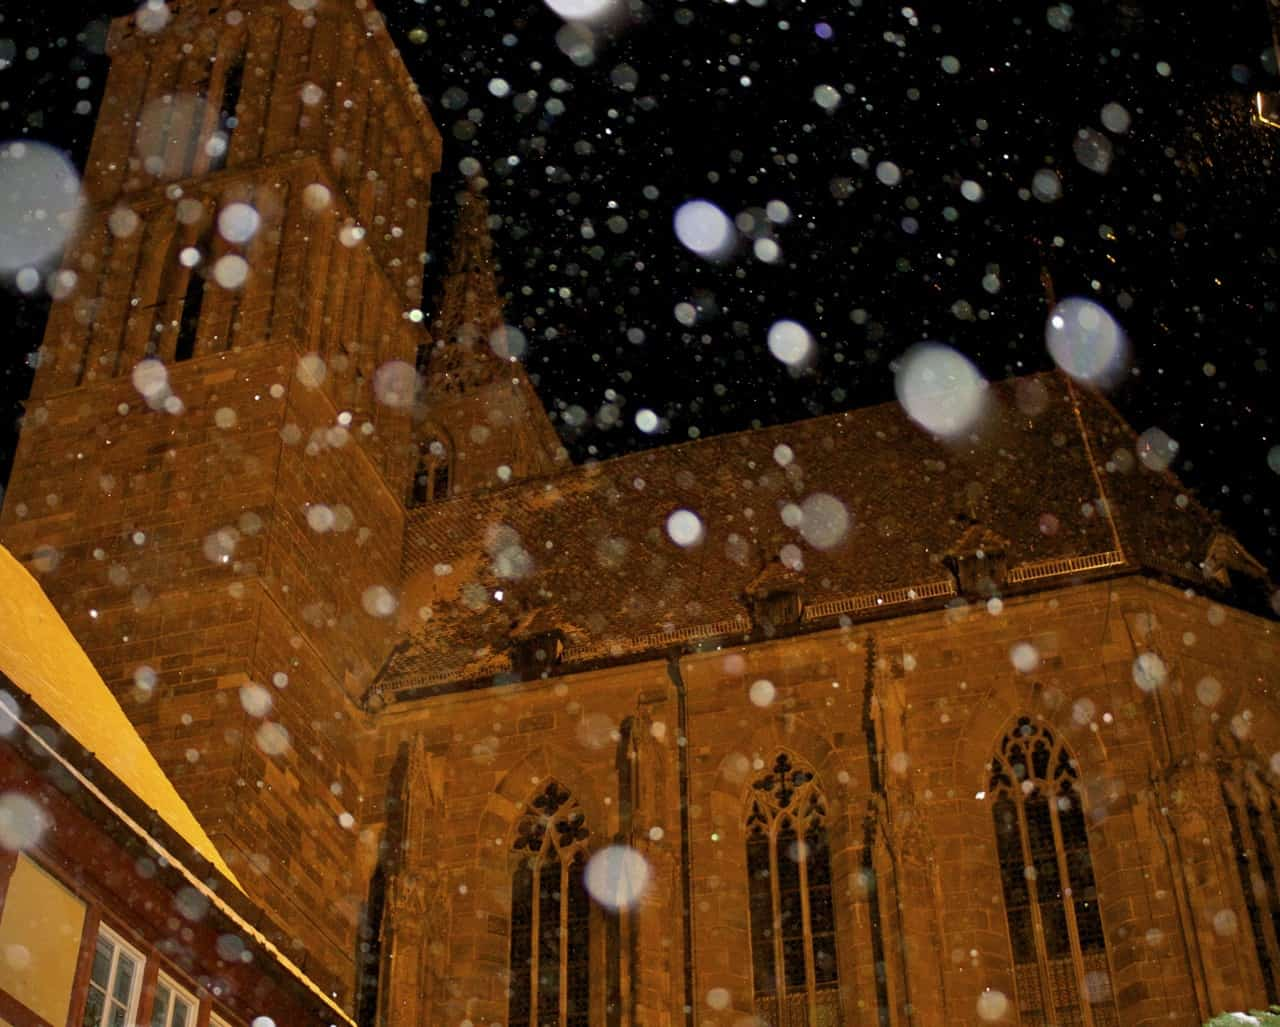 Snow coming down over the church in Rothburg ob der Tauber, Bavaria, Germany